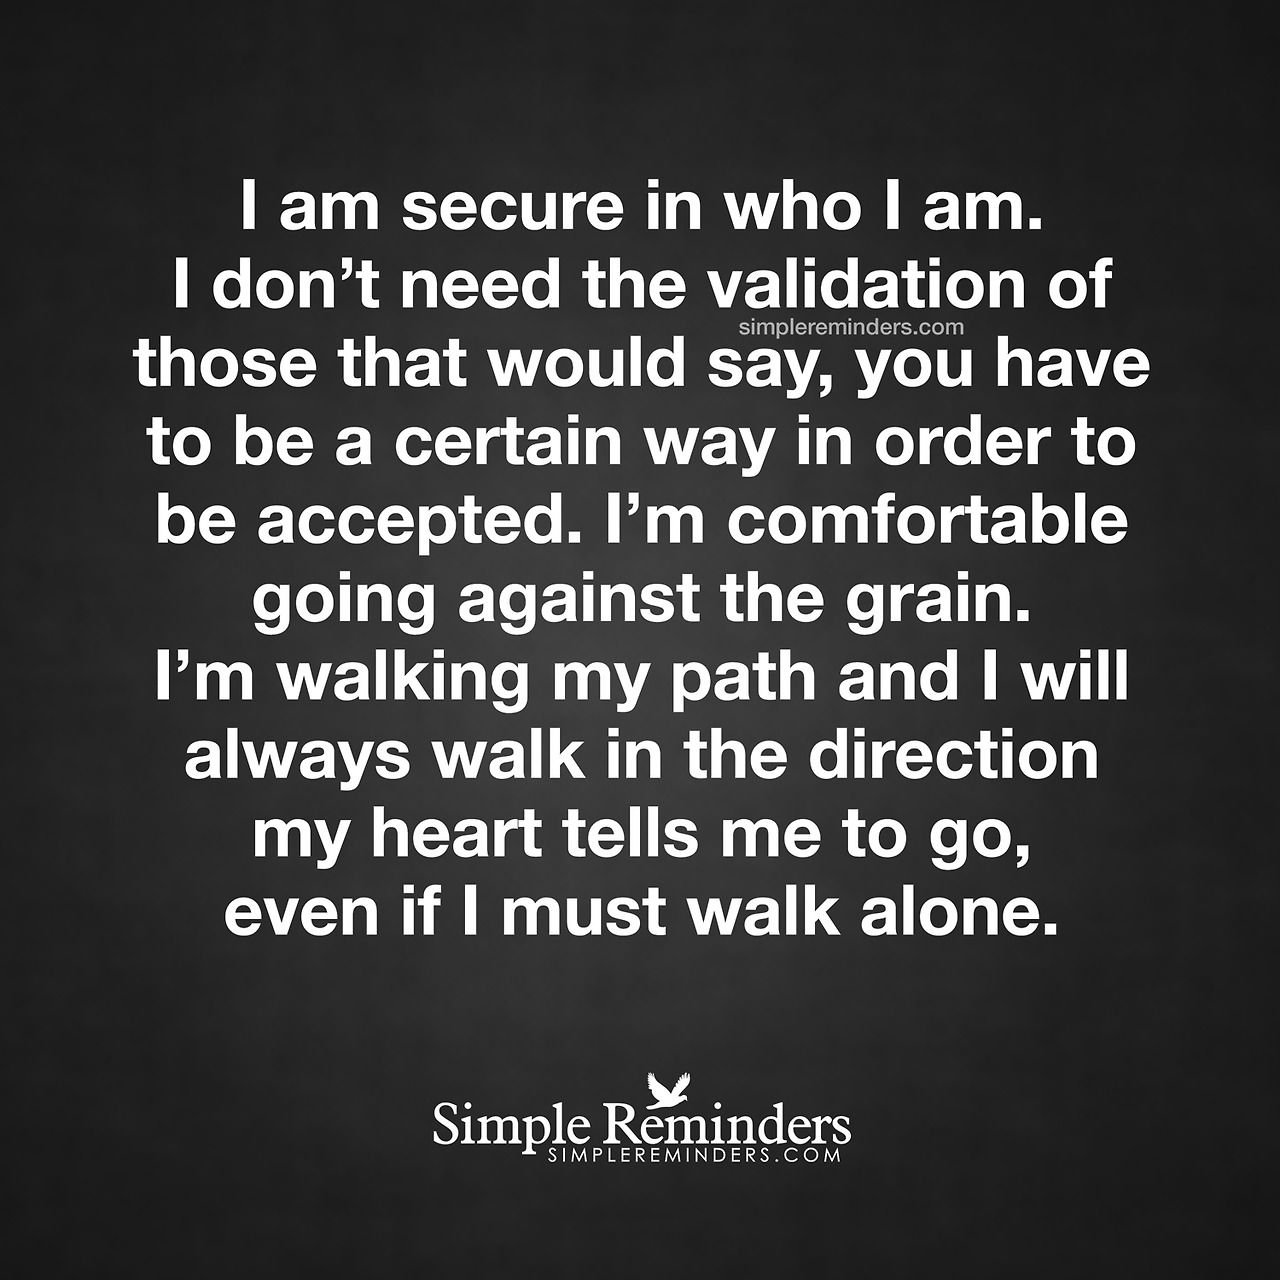 """""""I am secure in who I am. I don't need the validation of those that would say, you have to be a certain way in order to be accepted. I'm comfortable going against the grain. I'm walking my path and I will always walk in the direction my heart tells..."""